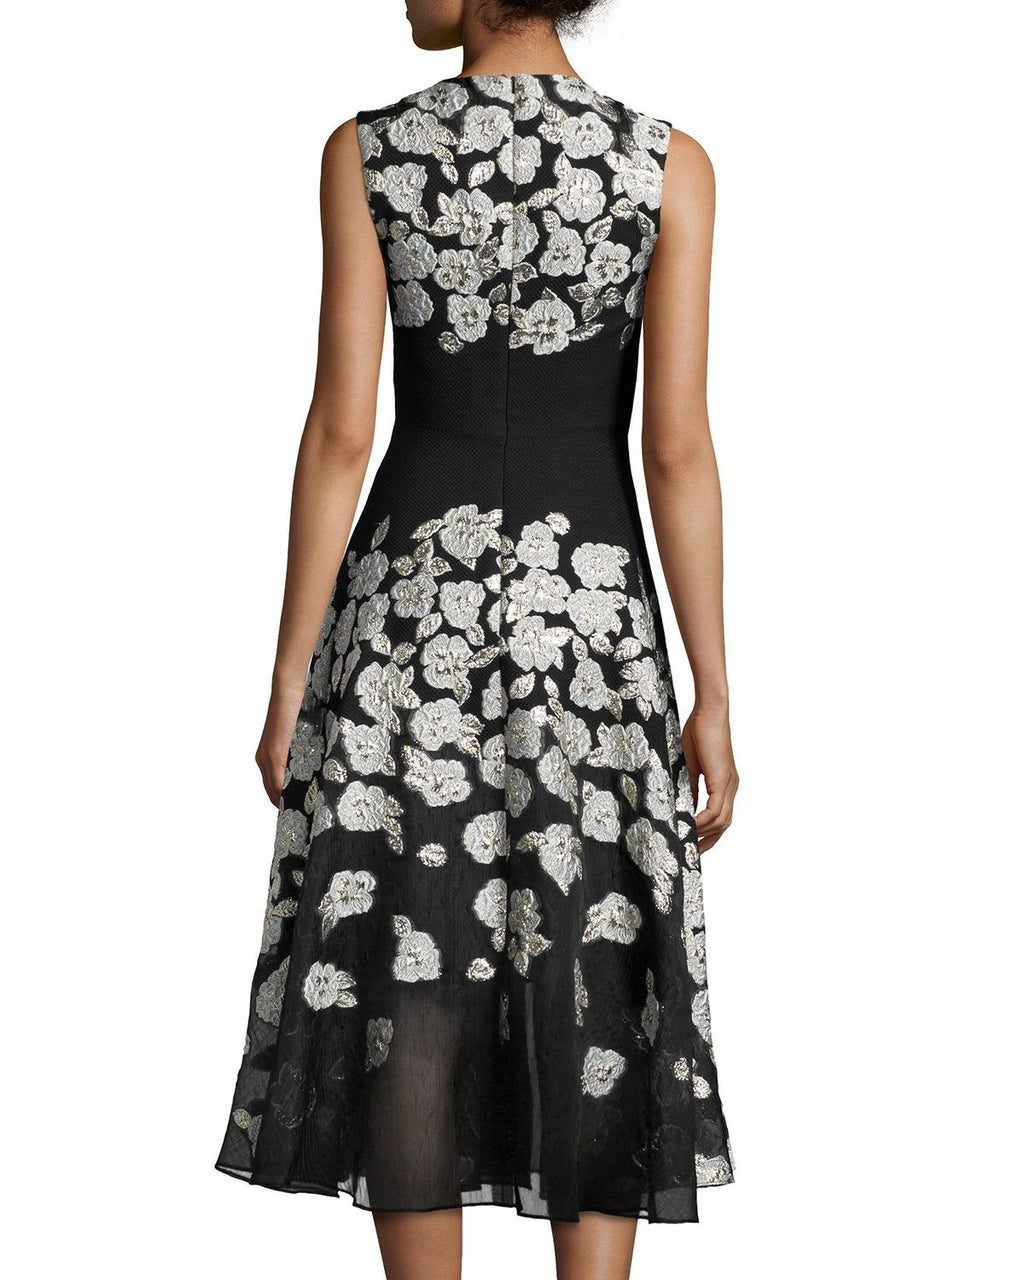 Lela Rose Sleeveless Stamped-Floral Dress, Black